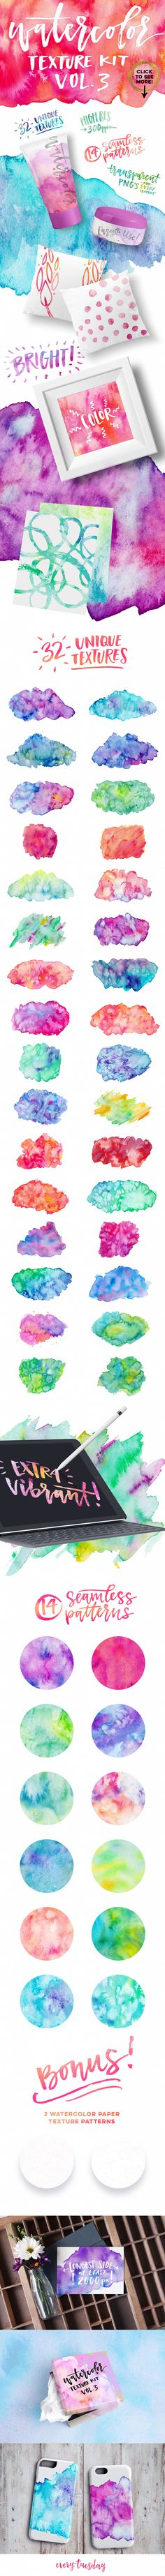 Watercolor Texture Kit Vol. 3 by everytuesday on @creativemarket